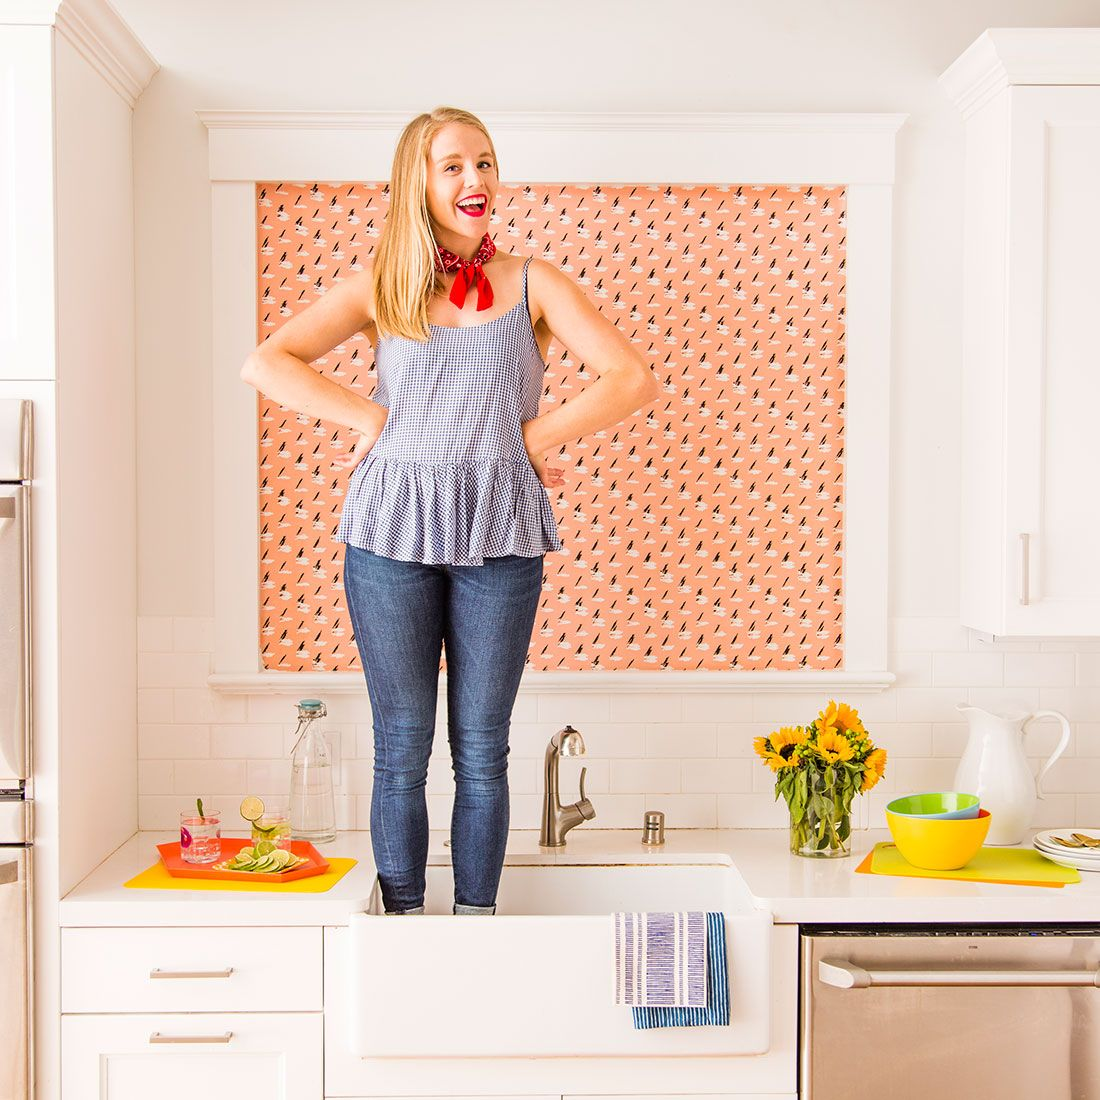 An Easy Diy For A Boring Apartment: Save This Step-by-step DIY Project To Add A Little Color